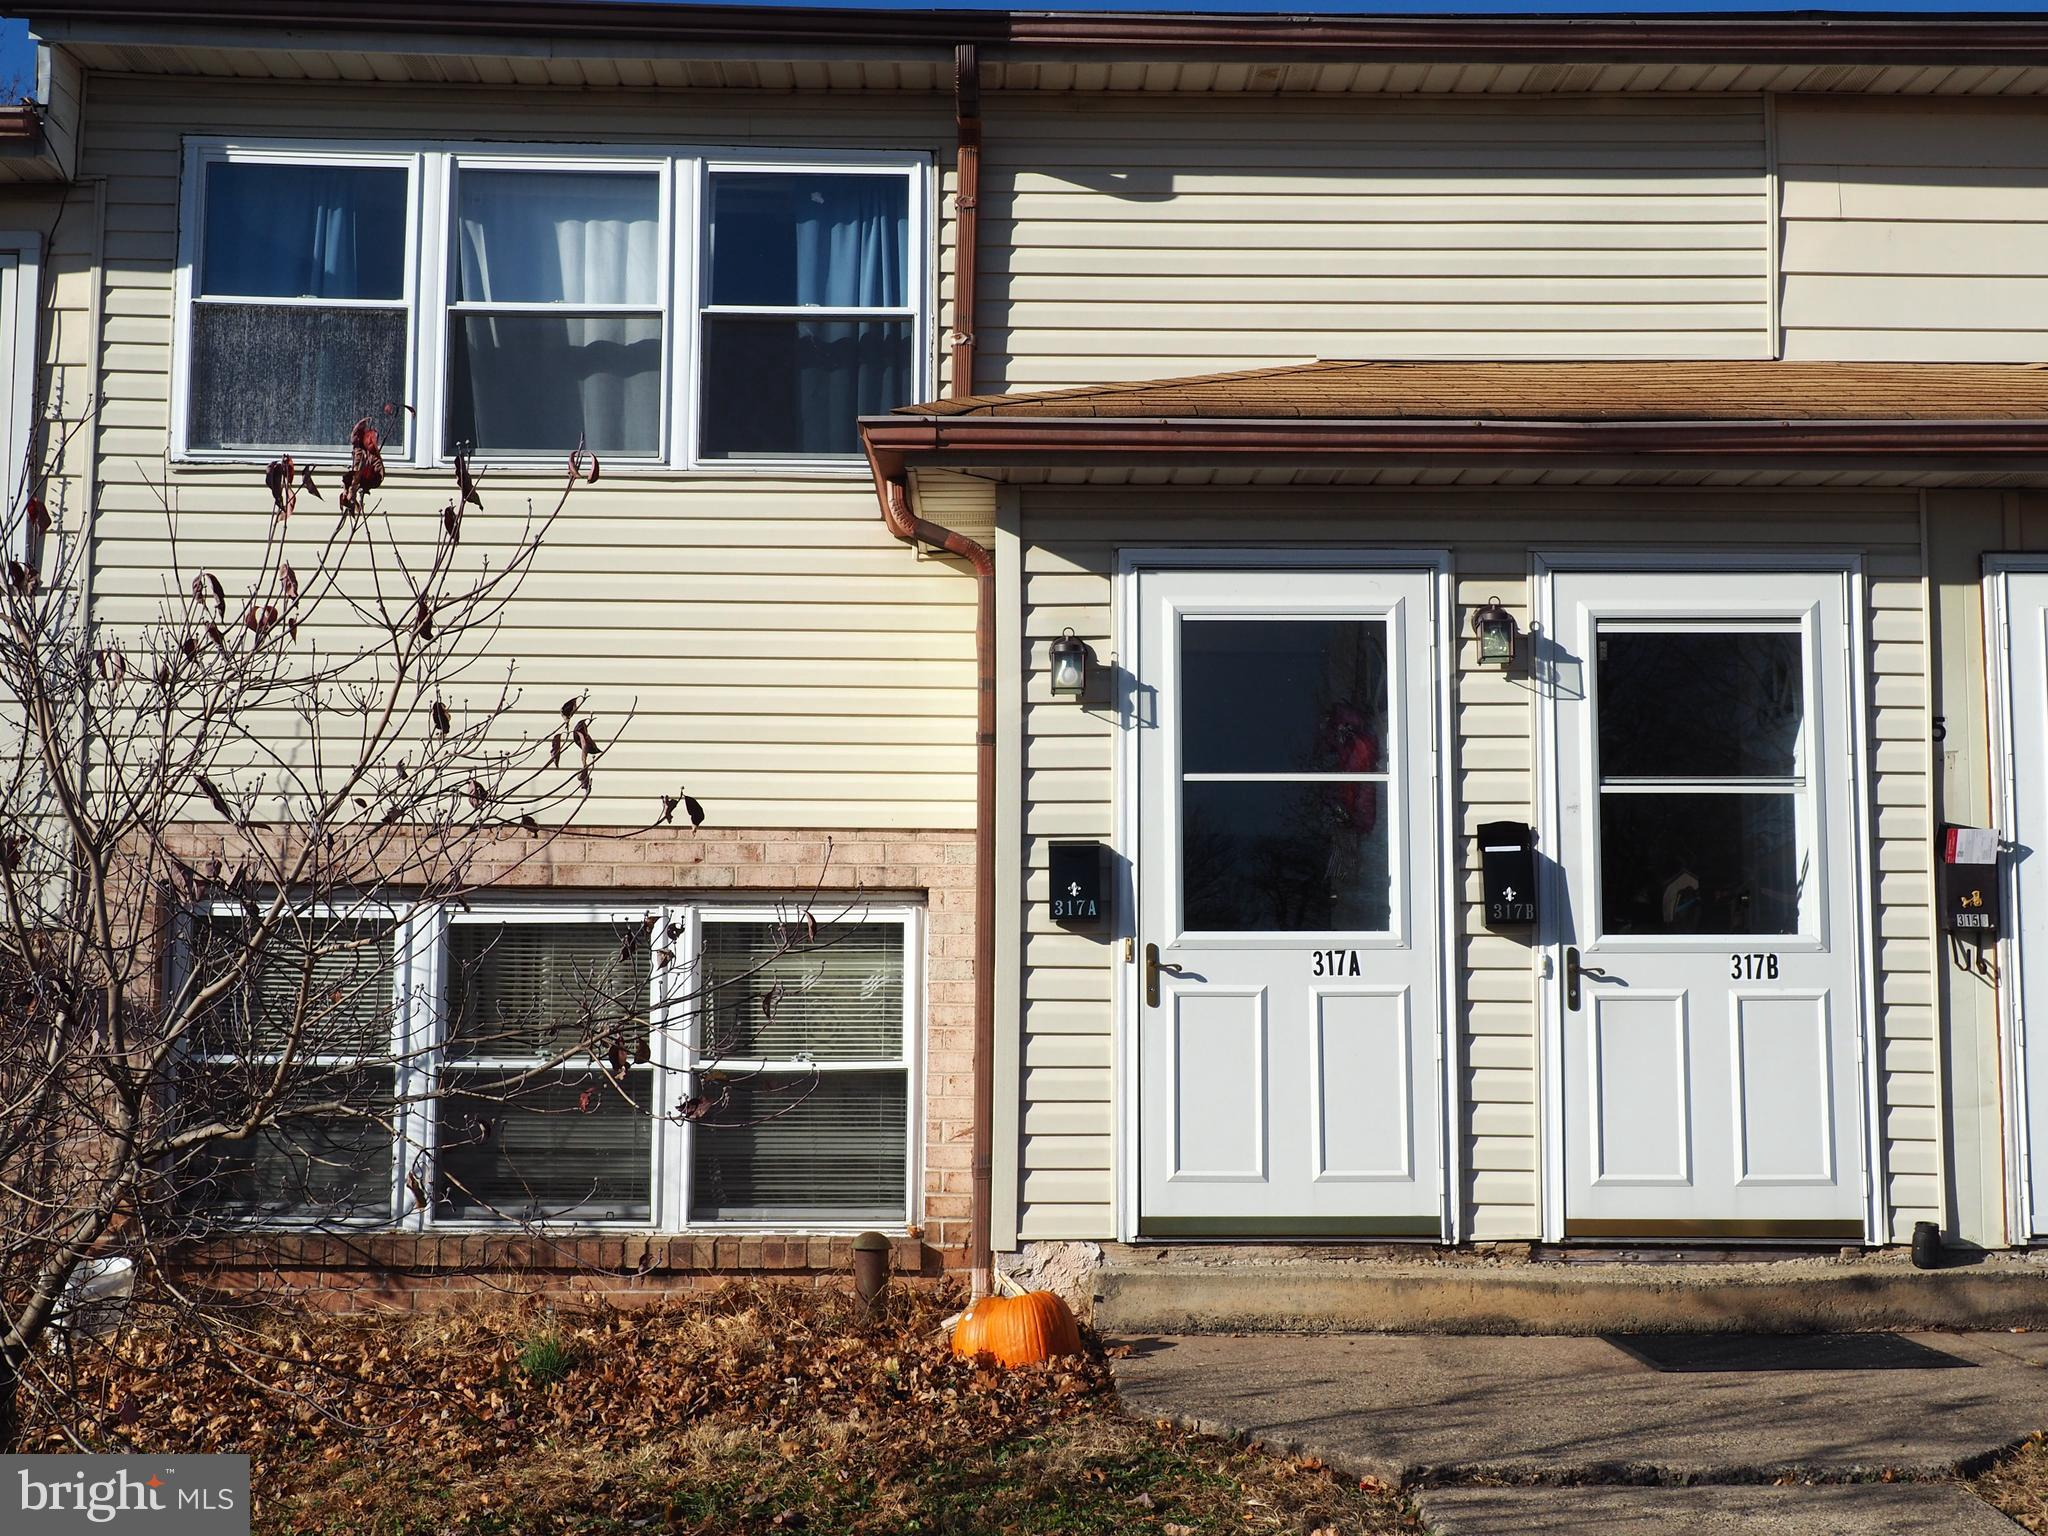 317 Unit A and B FORGE ROAD, EAST GREENVILLE, PA 18041